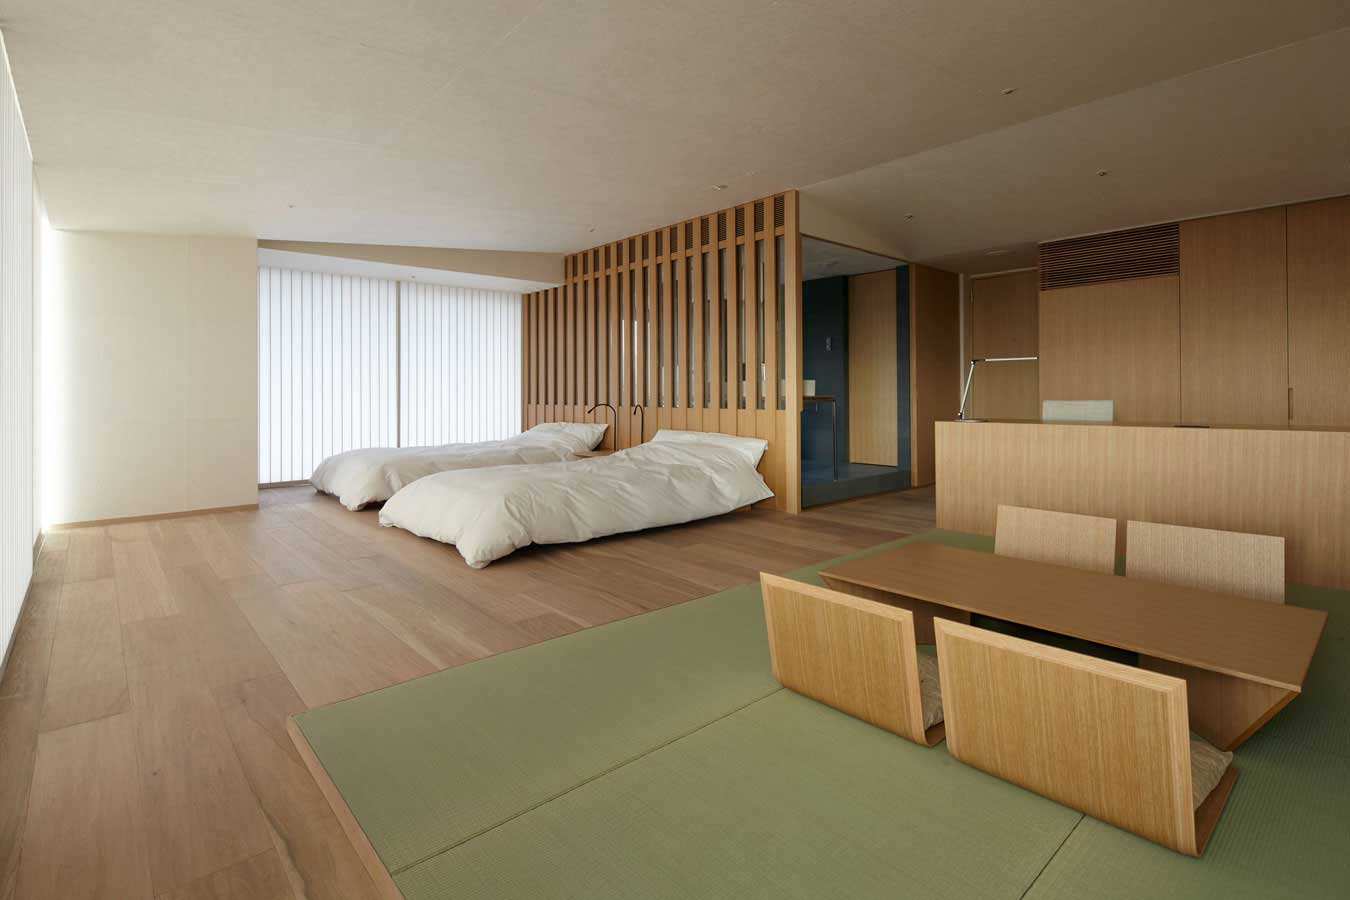 Modern japanese bedroom design 11 designs for Asian bedroom design